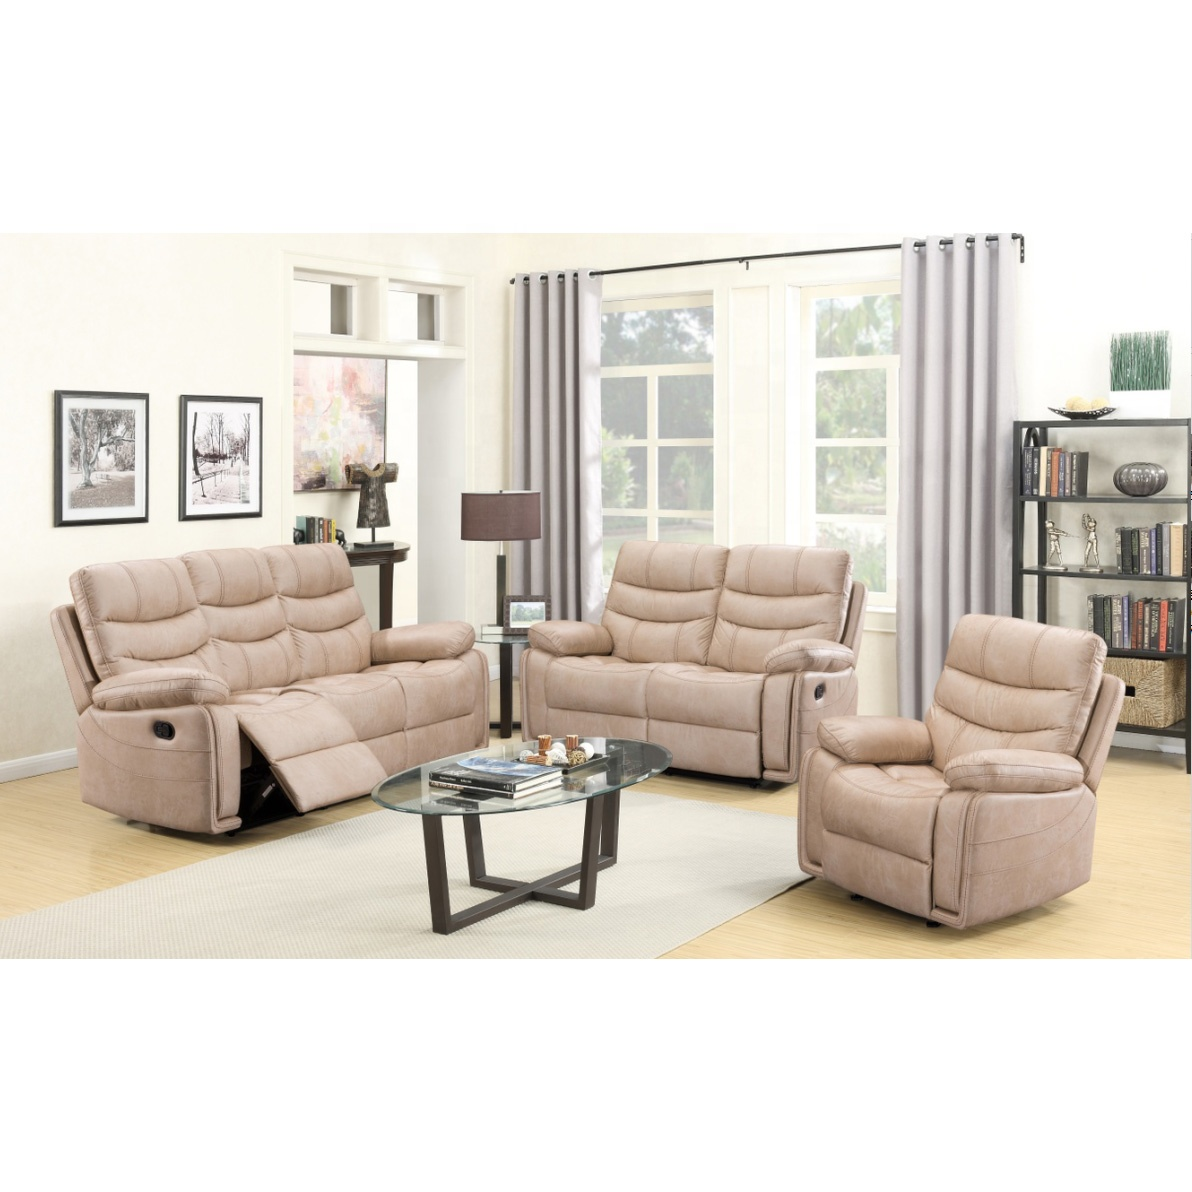 Frank Furniture Unique Design White Leather Modern 3 2 1 Recliner Sofa Set Living Room Sofa Buy Couches Lounge Handmade Recliner Sofa 3 Seater Recliner Product On Alibaba Com